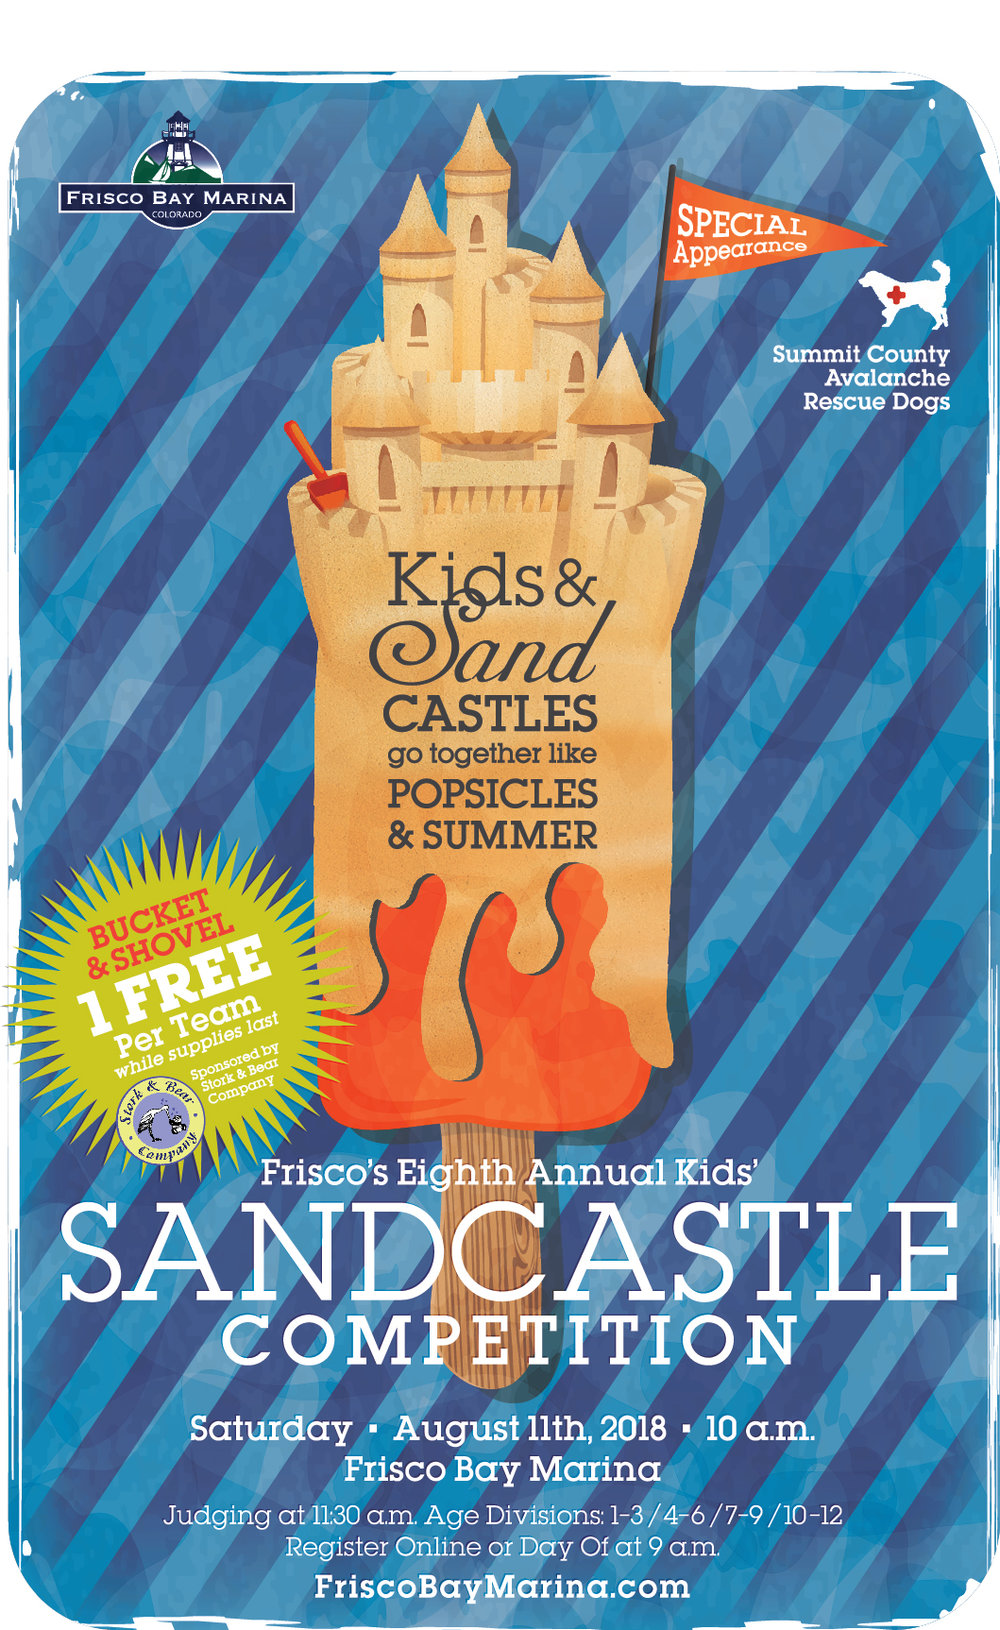 Copy of Sandcastle Competition Event Poster